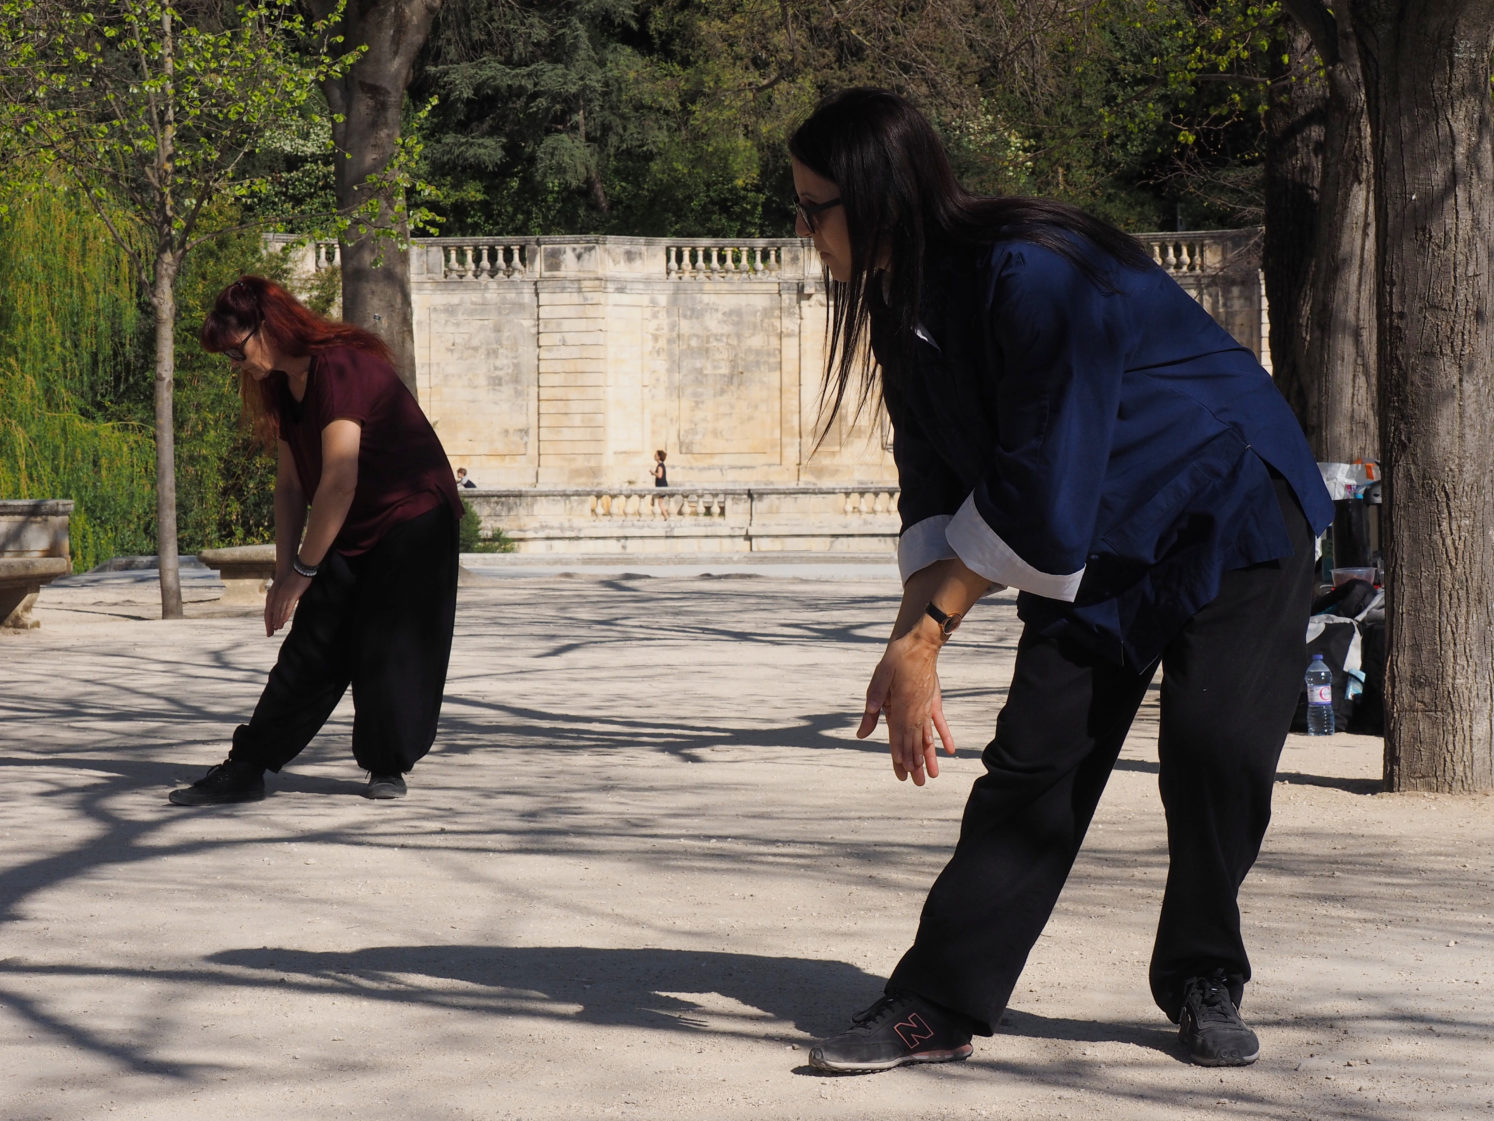 cours et stages qigong taichi : jardins fontaine nimes